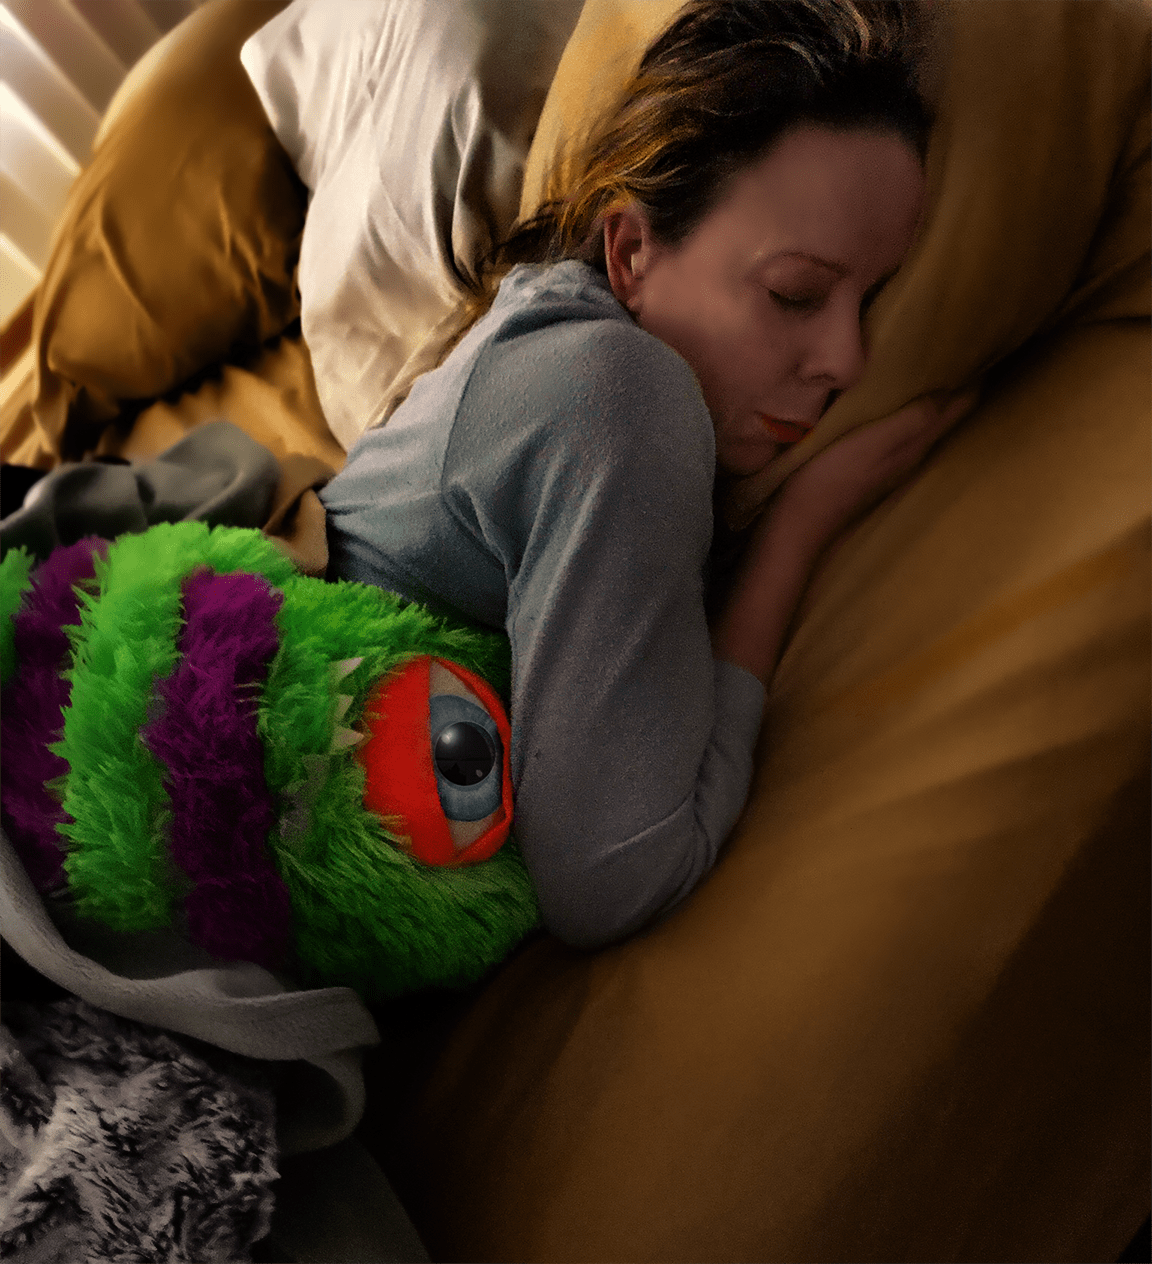 Young woman curled up with stuffed alien toy